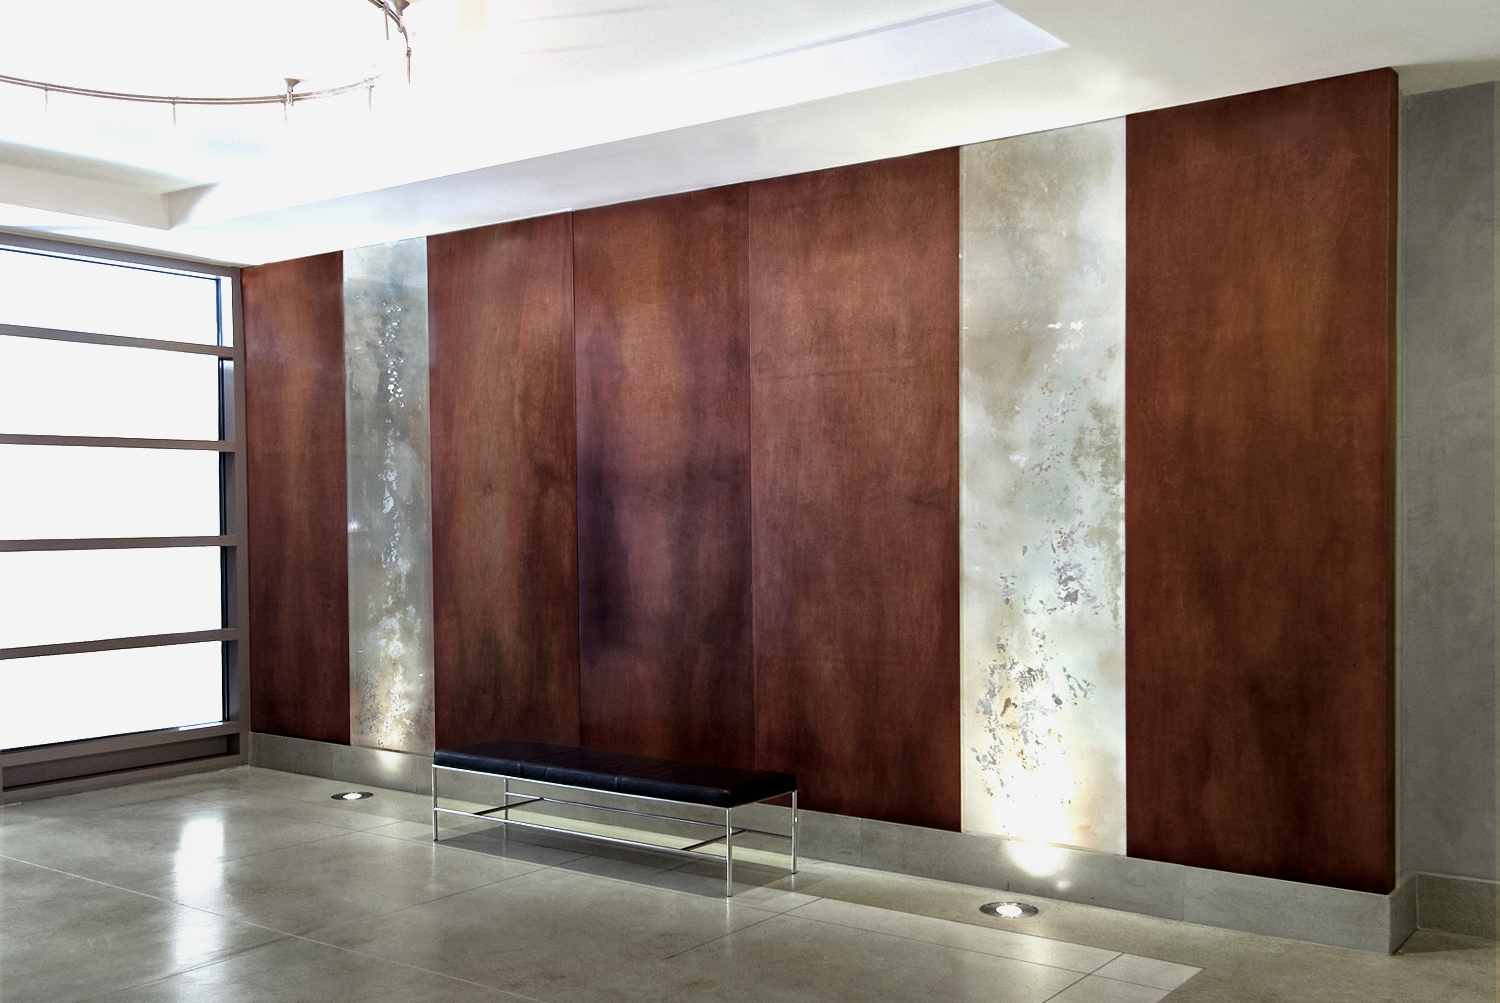 Commercial Interior Design by Joe Ginsberg